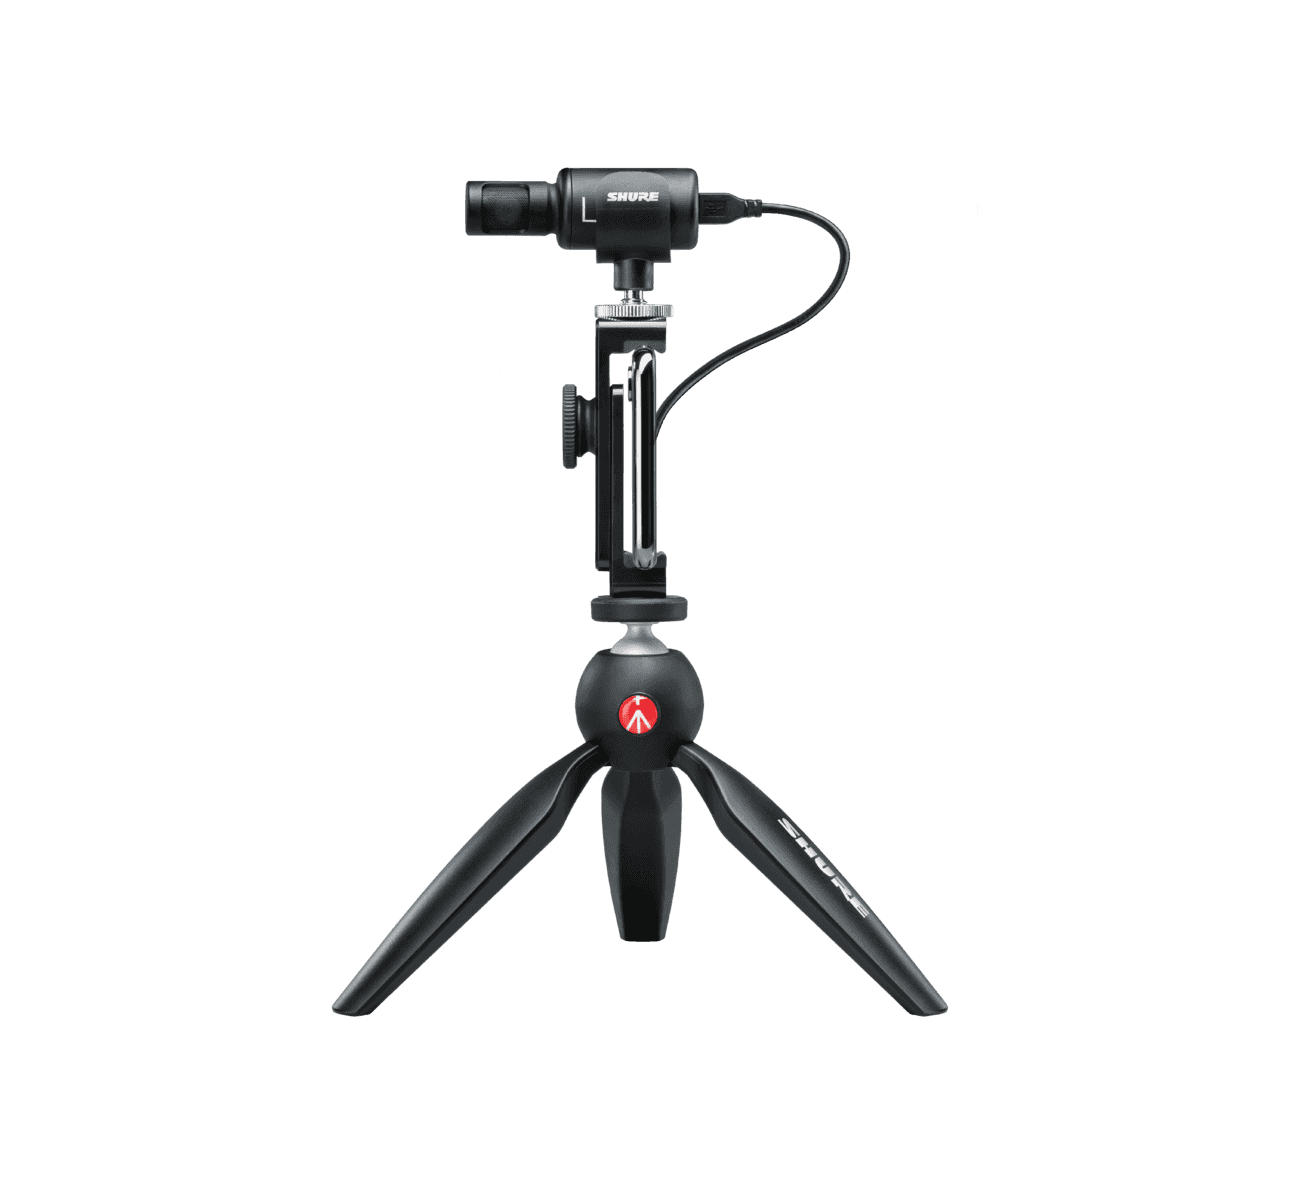 Shure video kit and accessory tripod